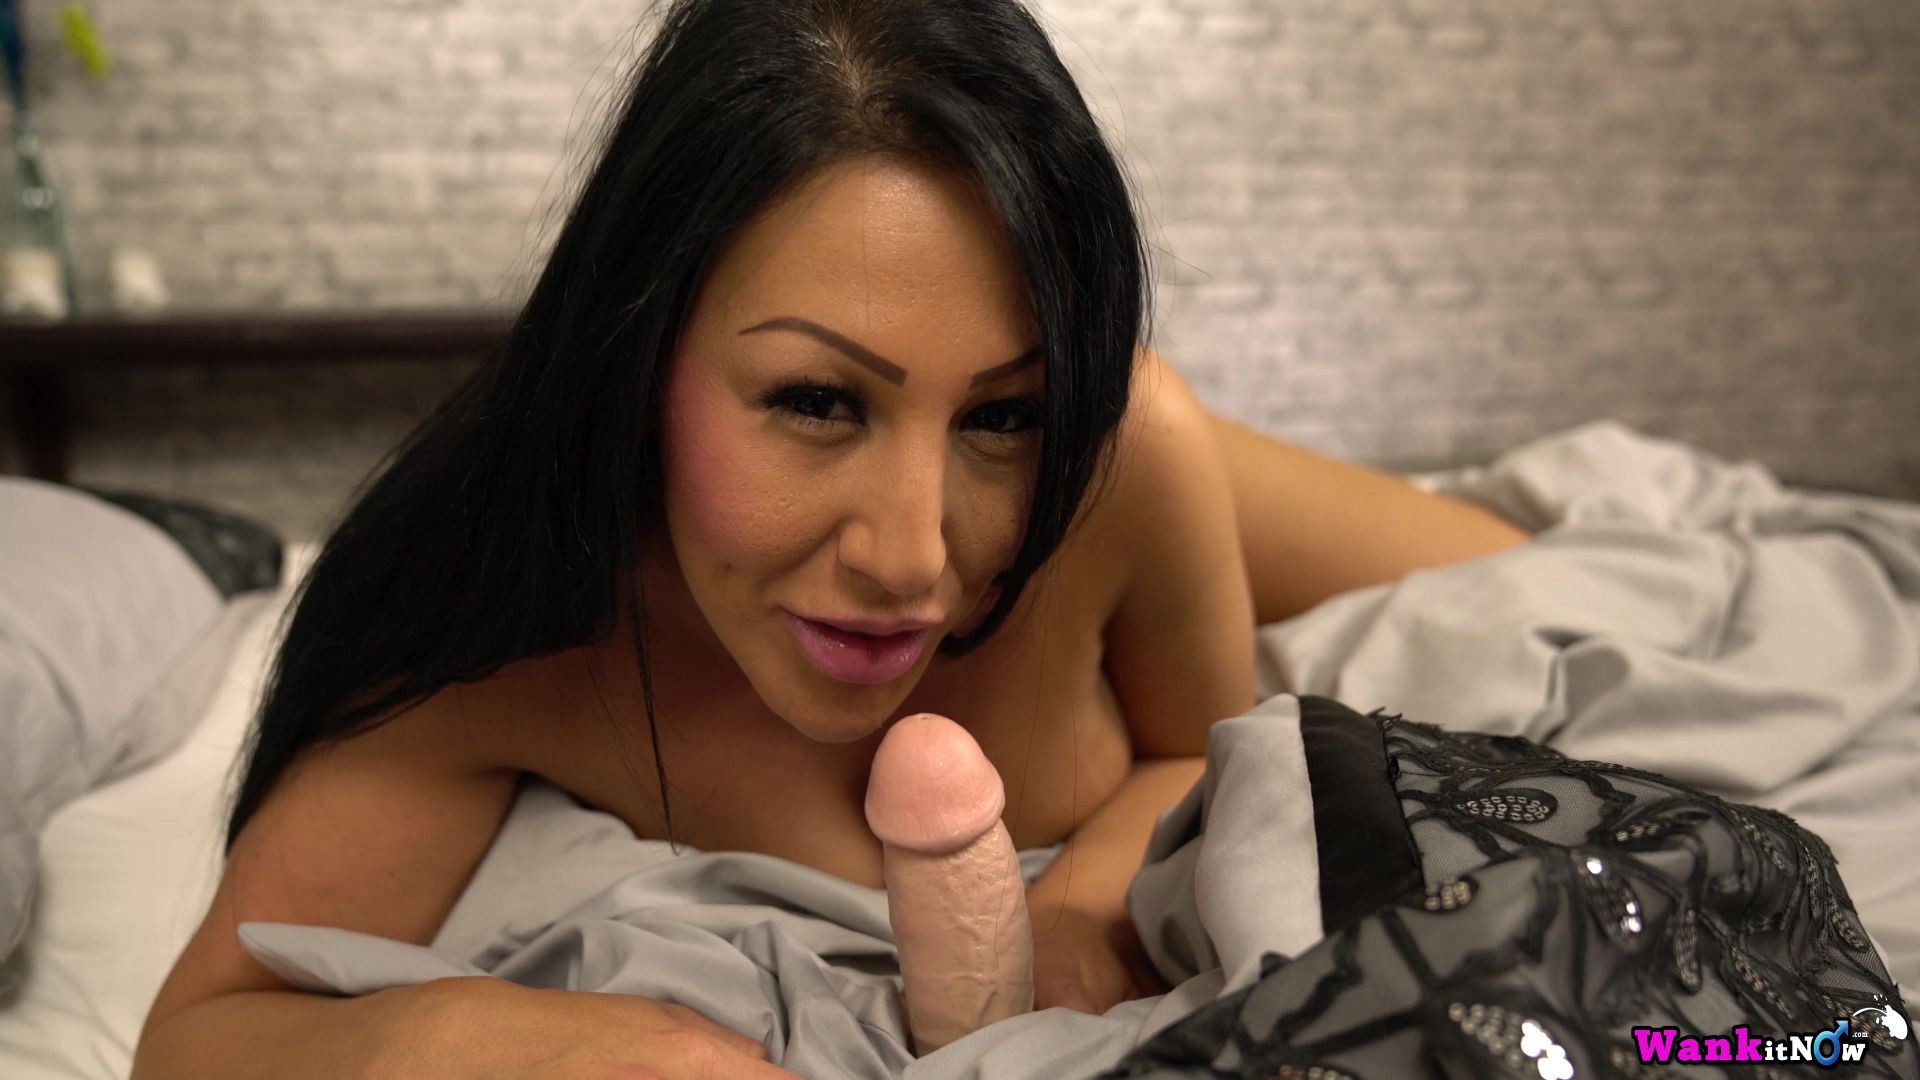 Hot full lips brunette of questionable ethnicity gets double creampie watch read rate comment Part 5